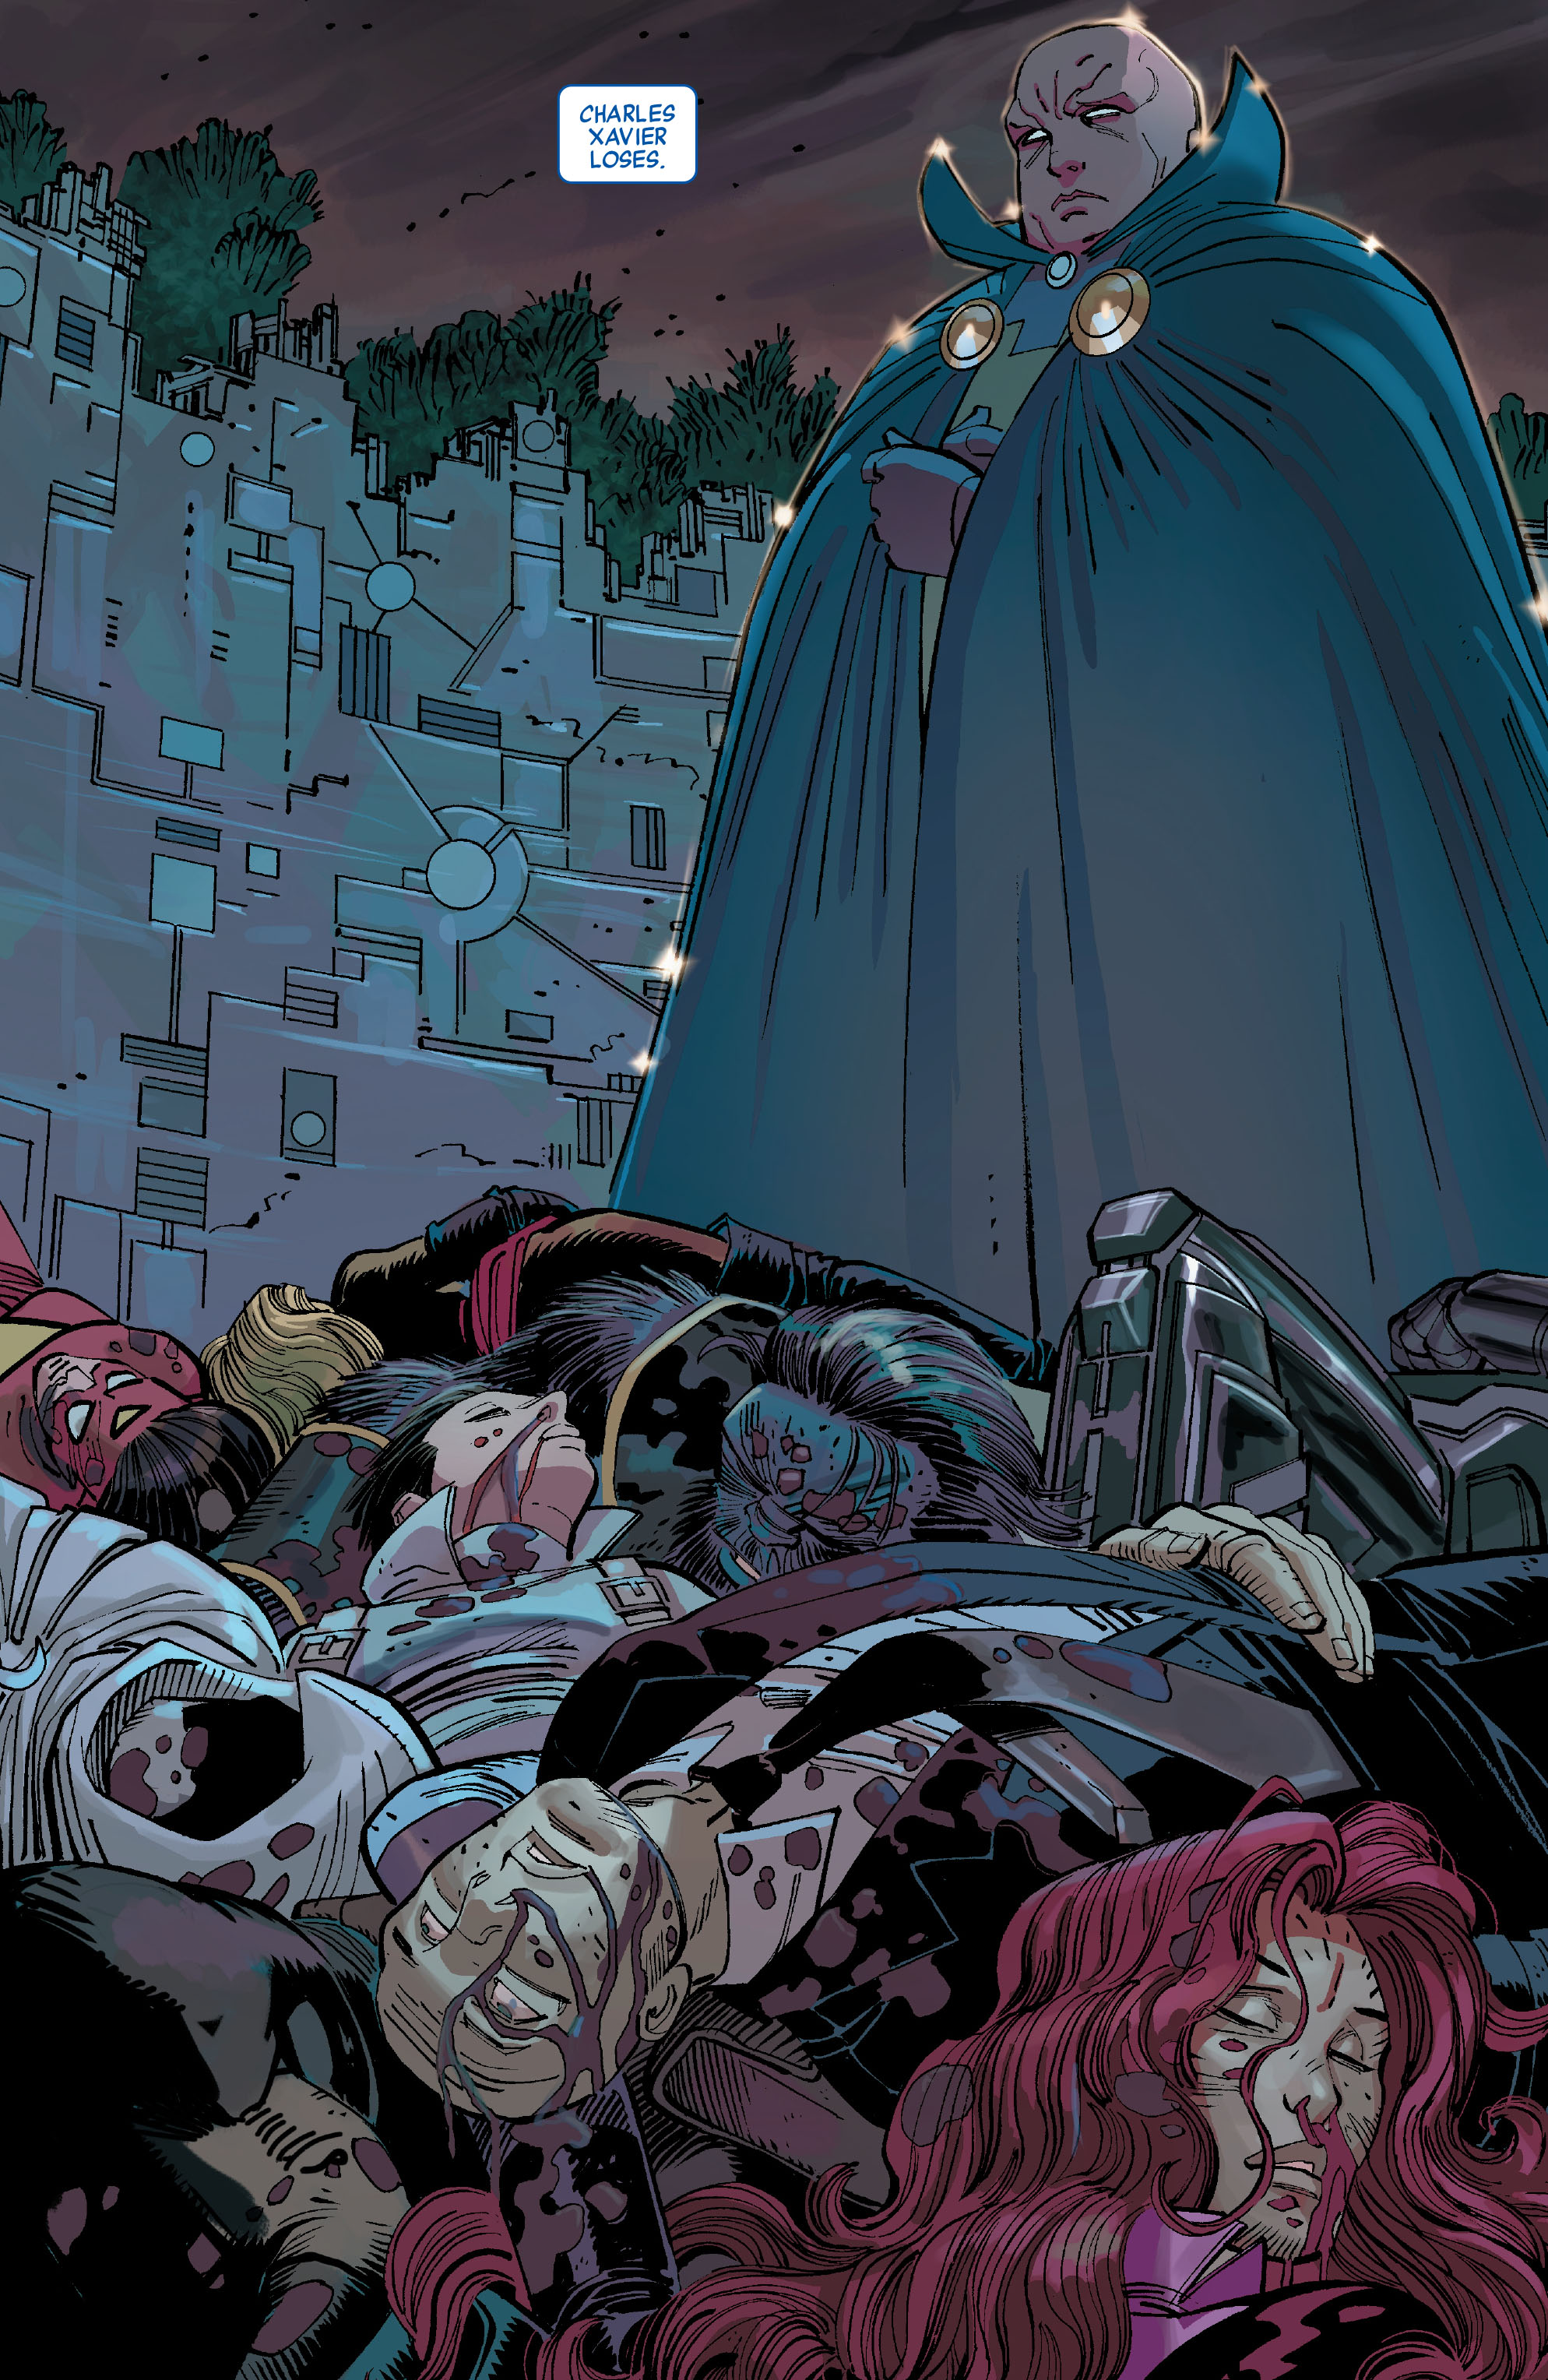 Read online Avengers (2010) comic -  Issue #11 - 22